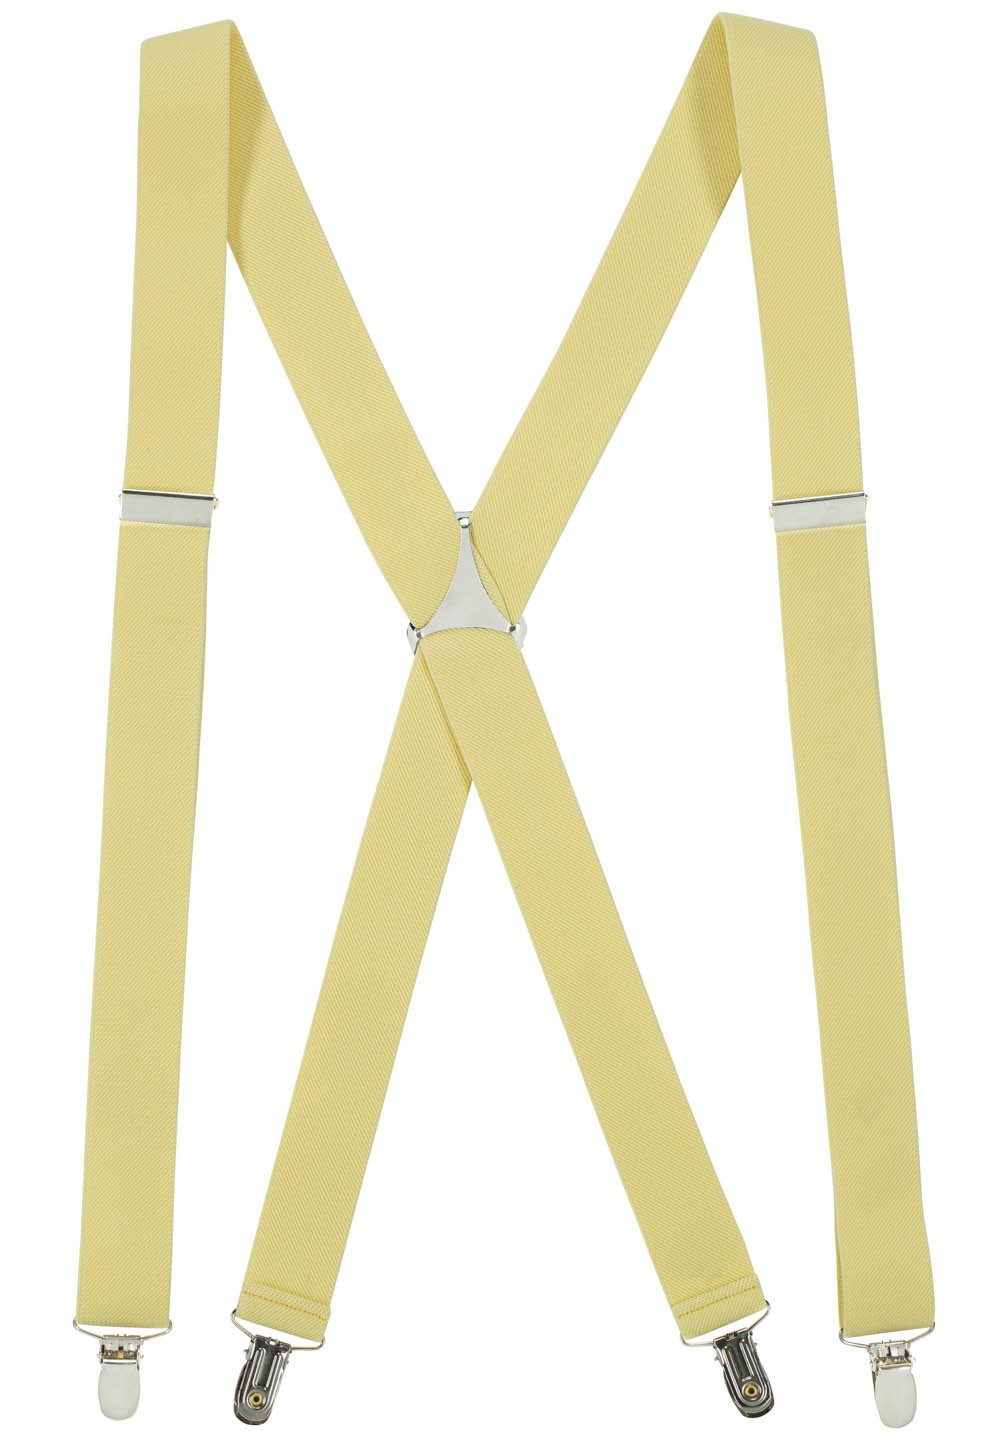 Hold'Em Suspender for Men X-Back Adjustable Straight Clip-on Tuxedo Suspenders Many Colors Available